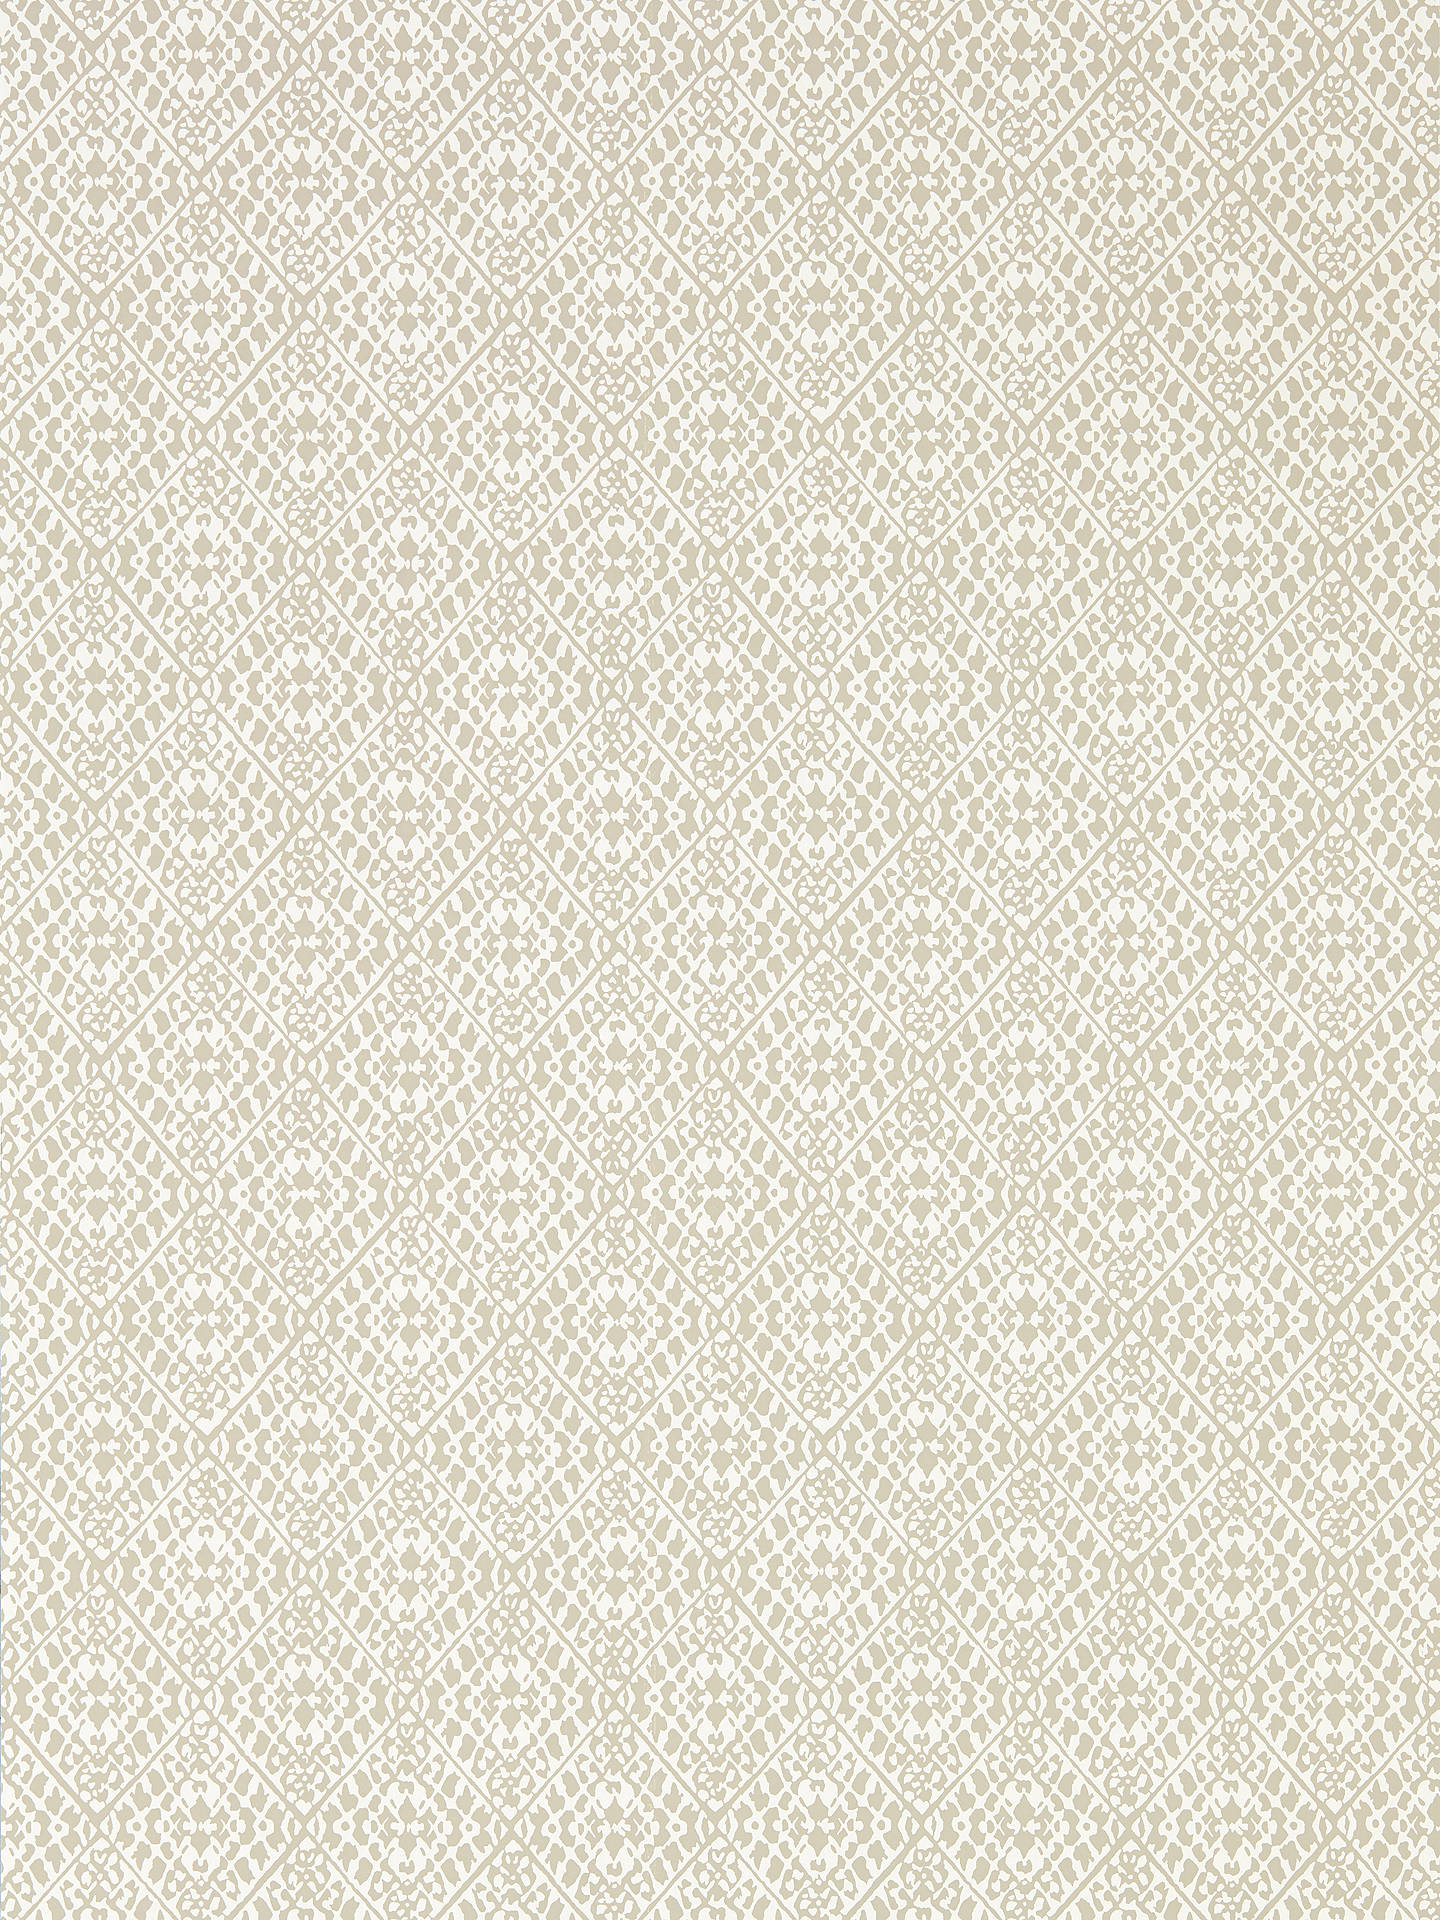 Buy Sanderson Pinjara Trellis Wallpaper, DCPW216784 Online at johnlewis.com